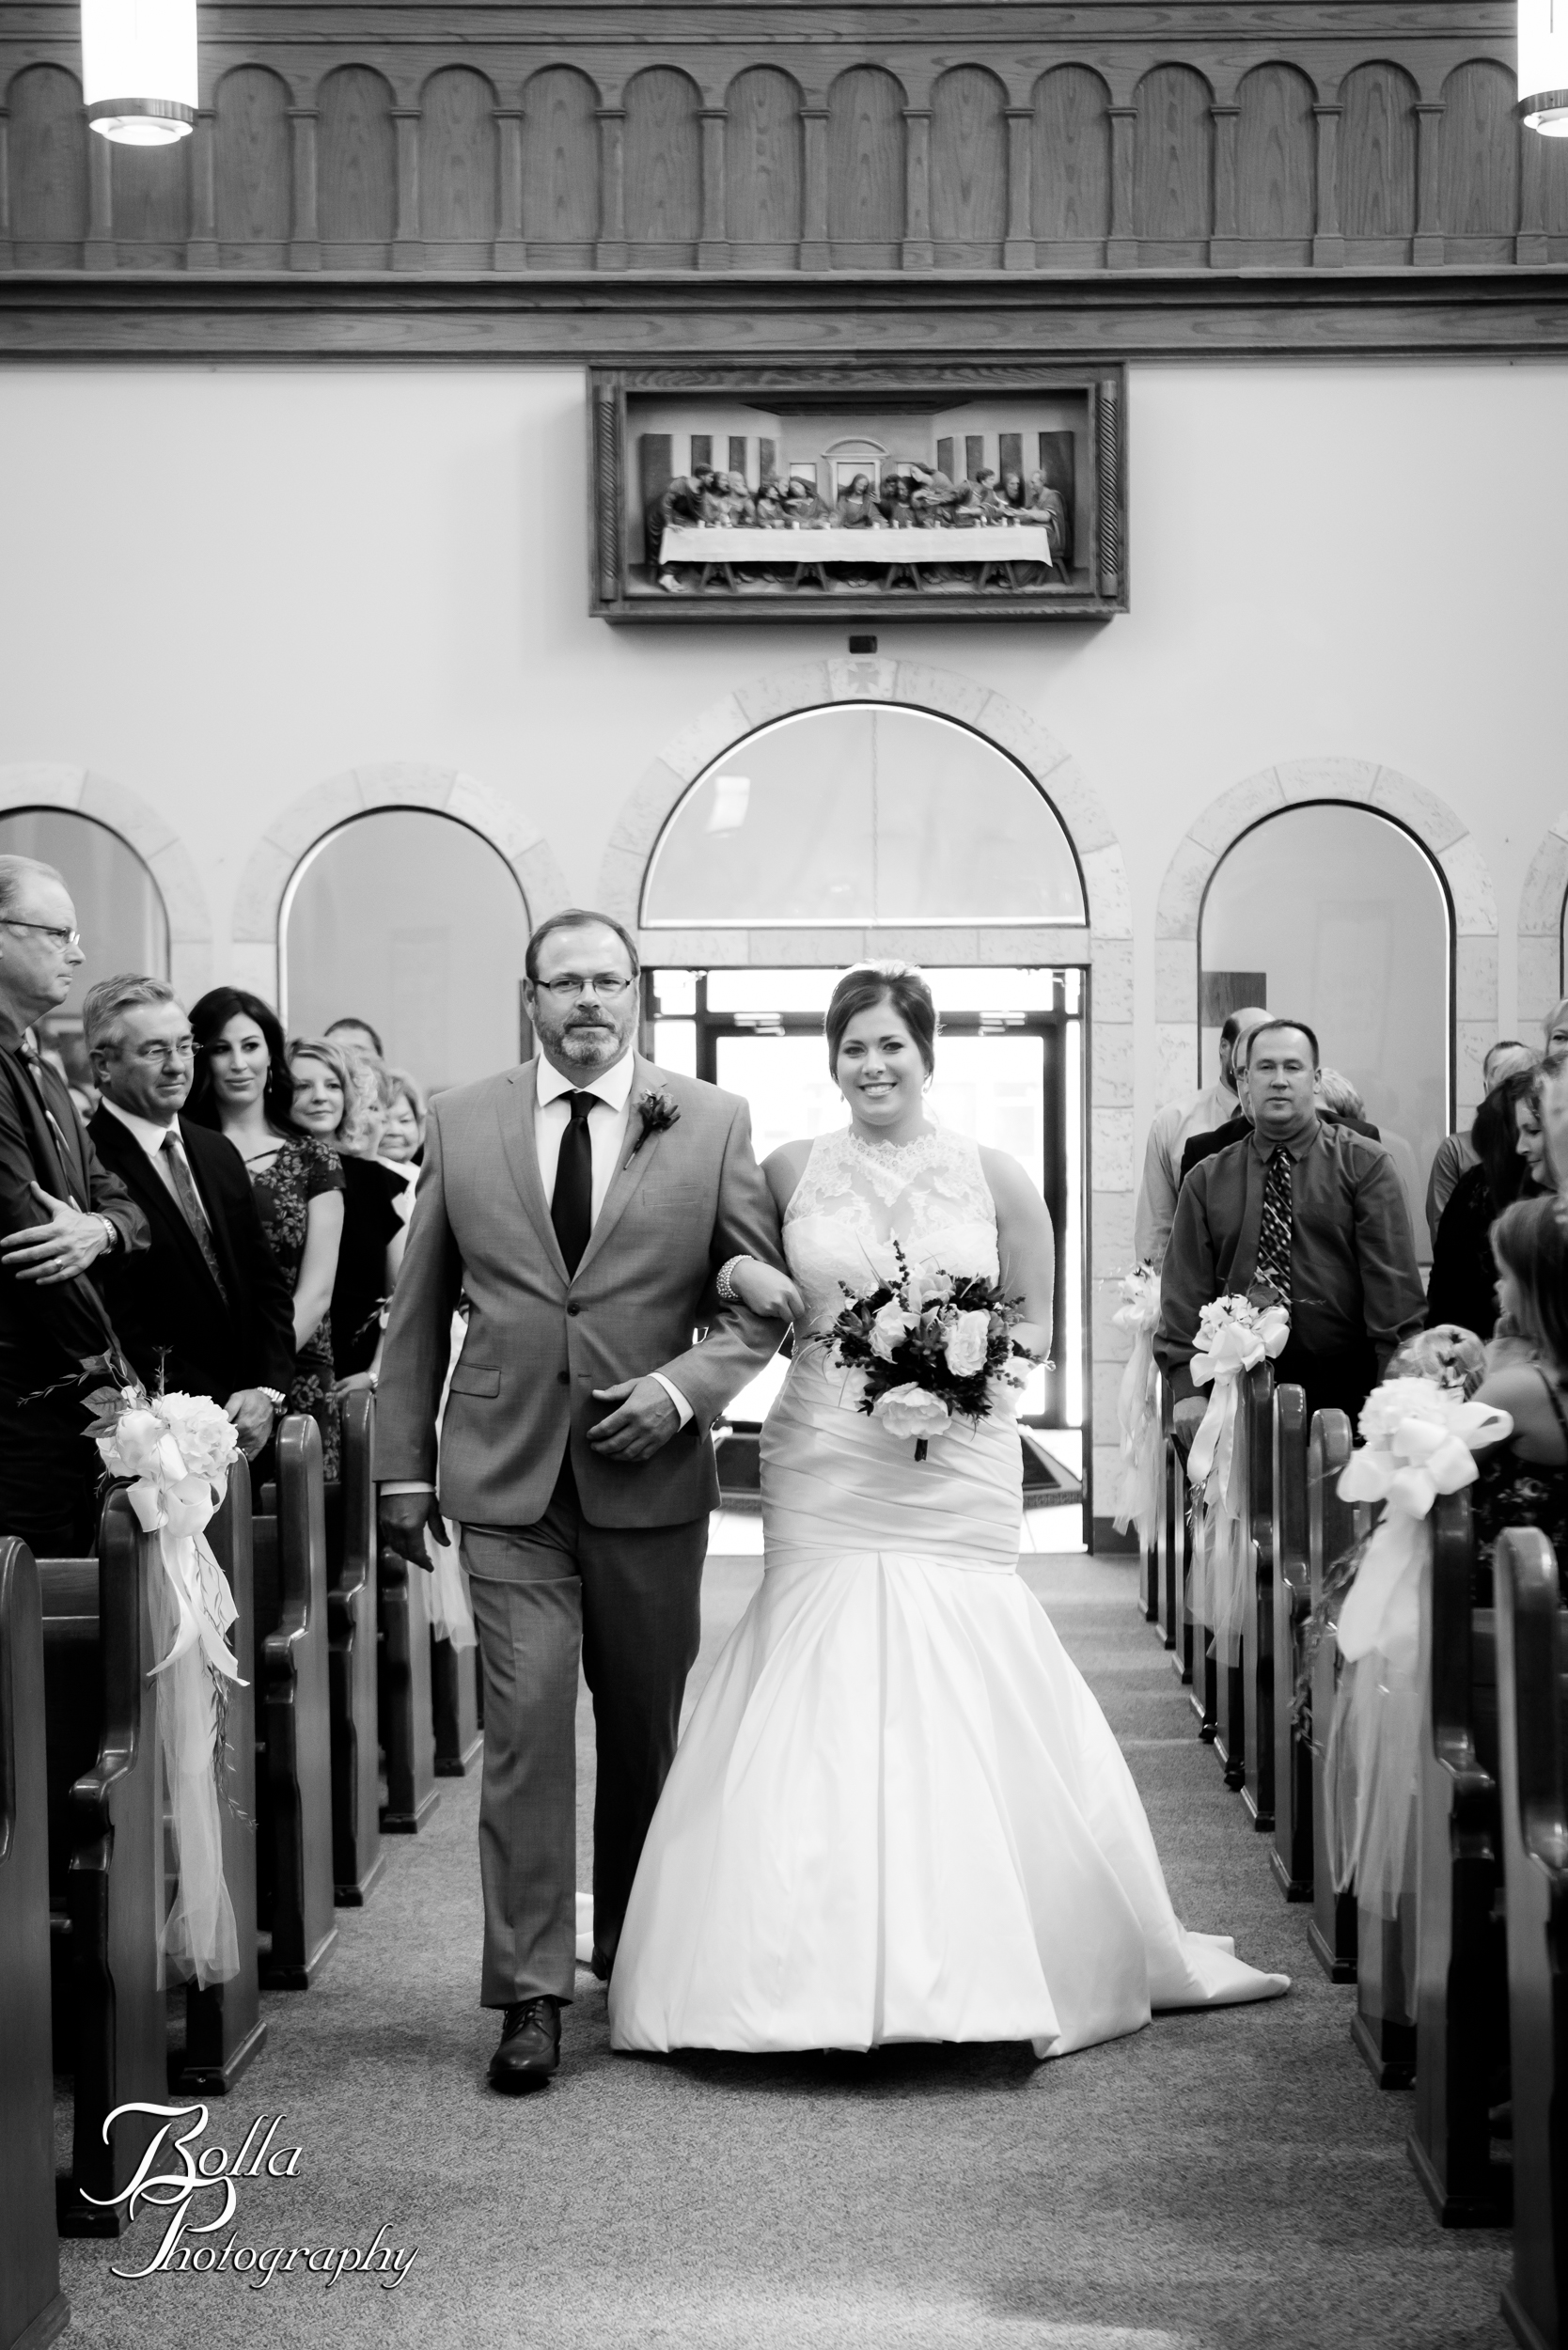 Bolla_photography_edwardsville_wedding_photographer_st_louis_weddings_Heinzmann-0187.jpg